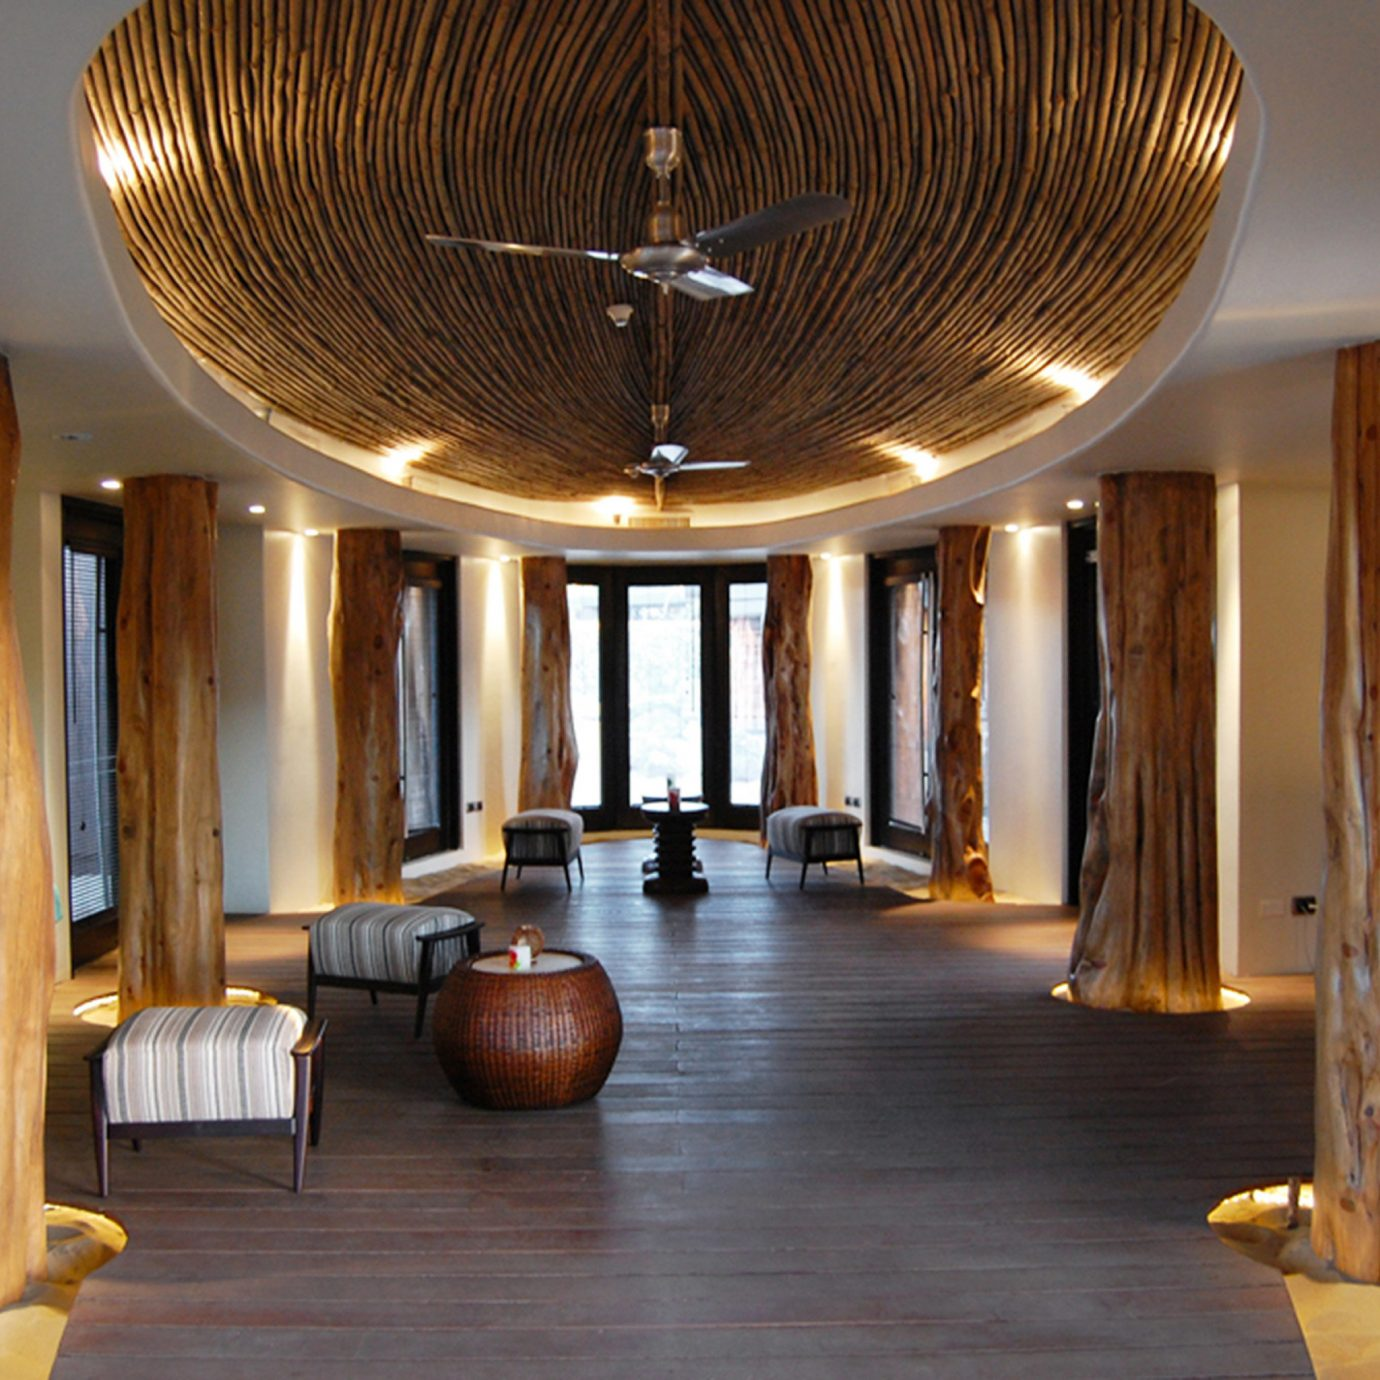 Eco Lobby Lounge Modern Romantic property wooden home lighting Resort mansion living room tourist attraction restaurant hall